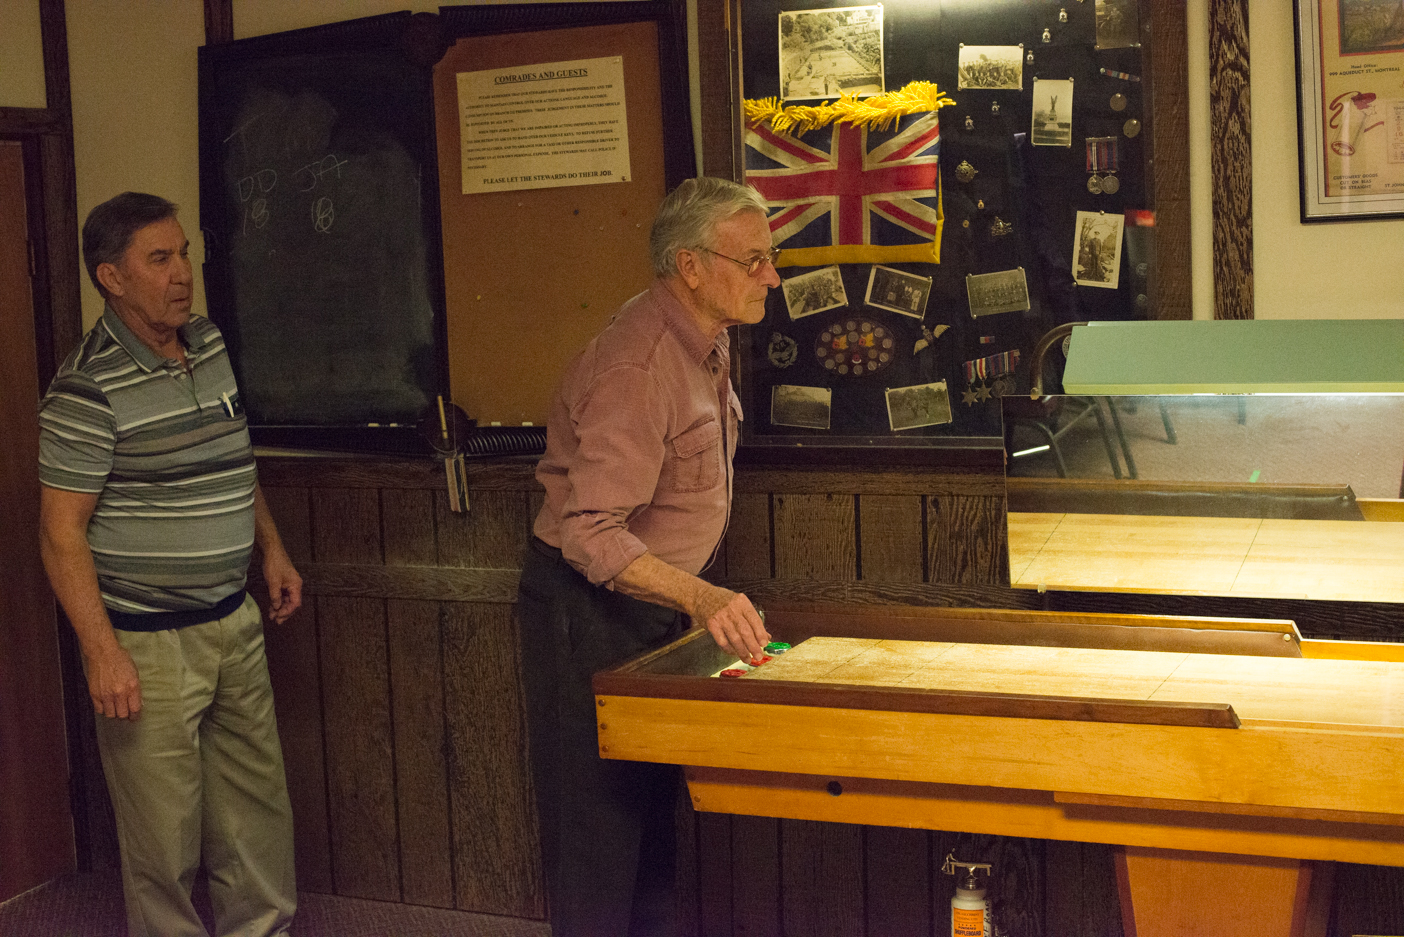 Shuffleboard is an interesting sport in that there are no age or gender divisions. Everyone is welcome and encouraged to play